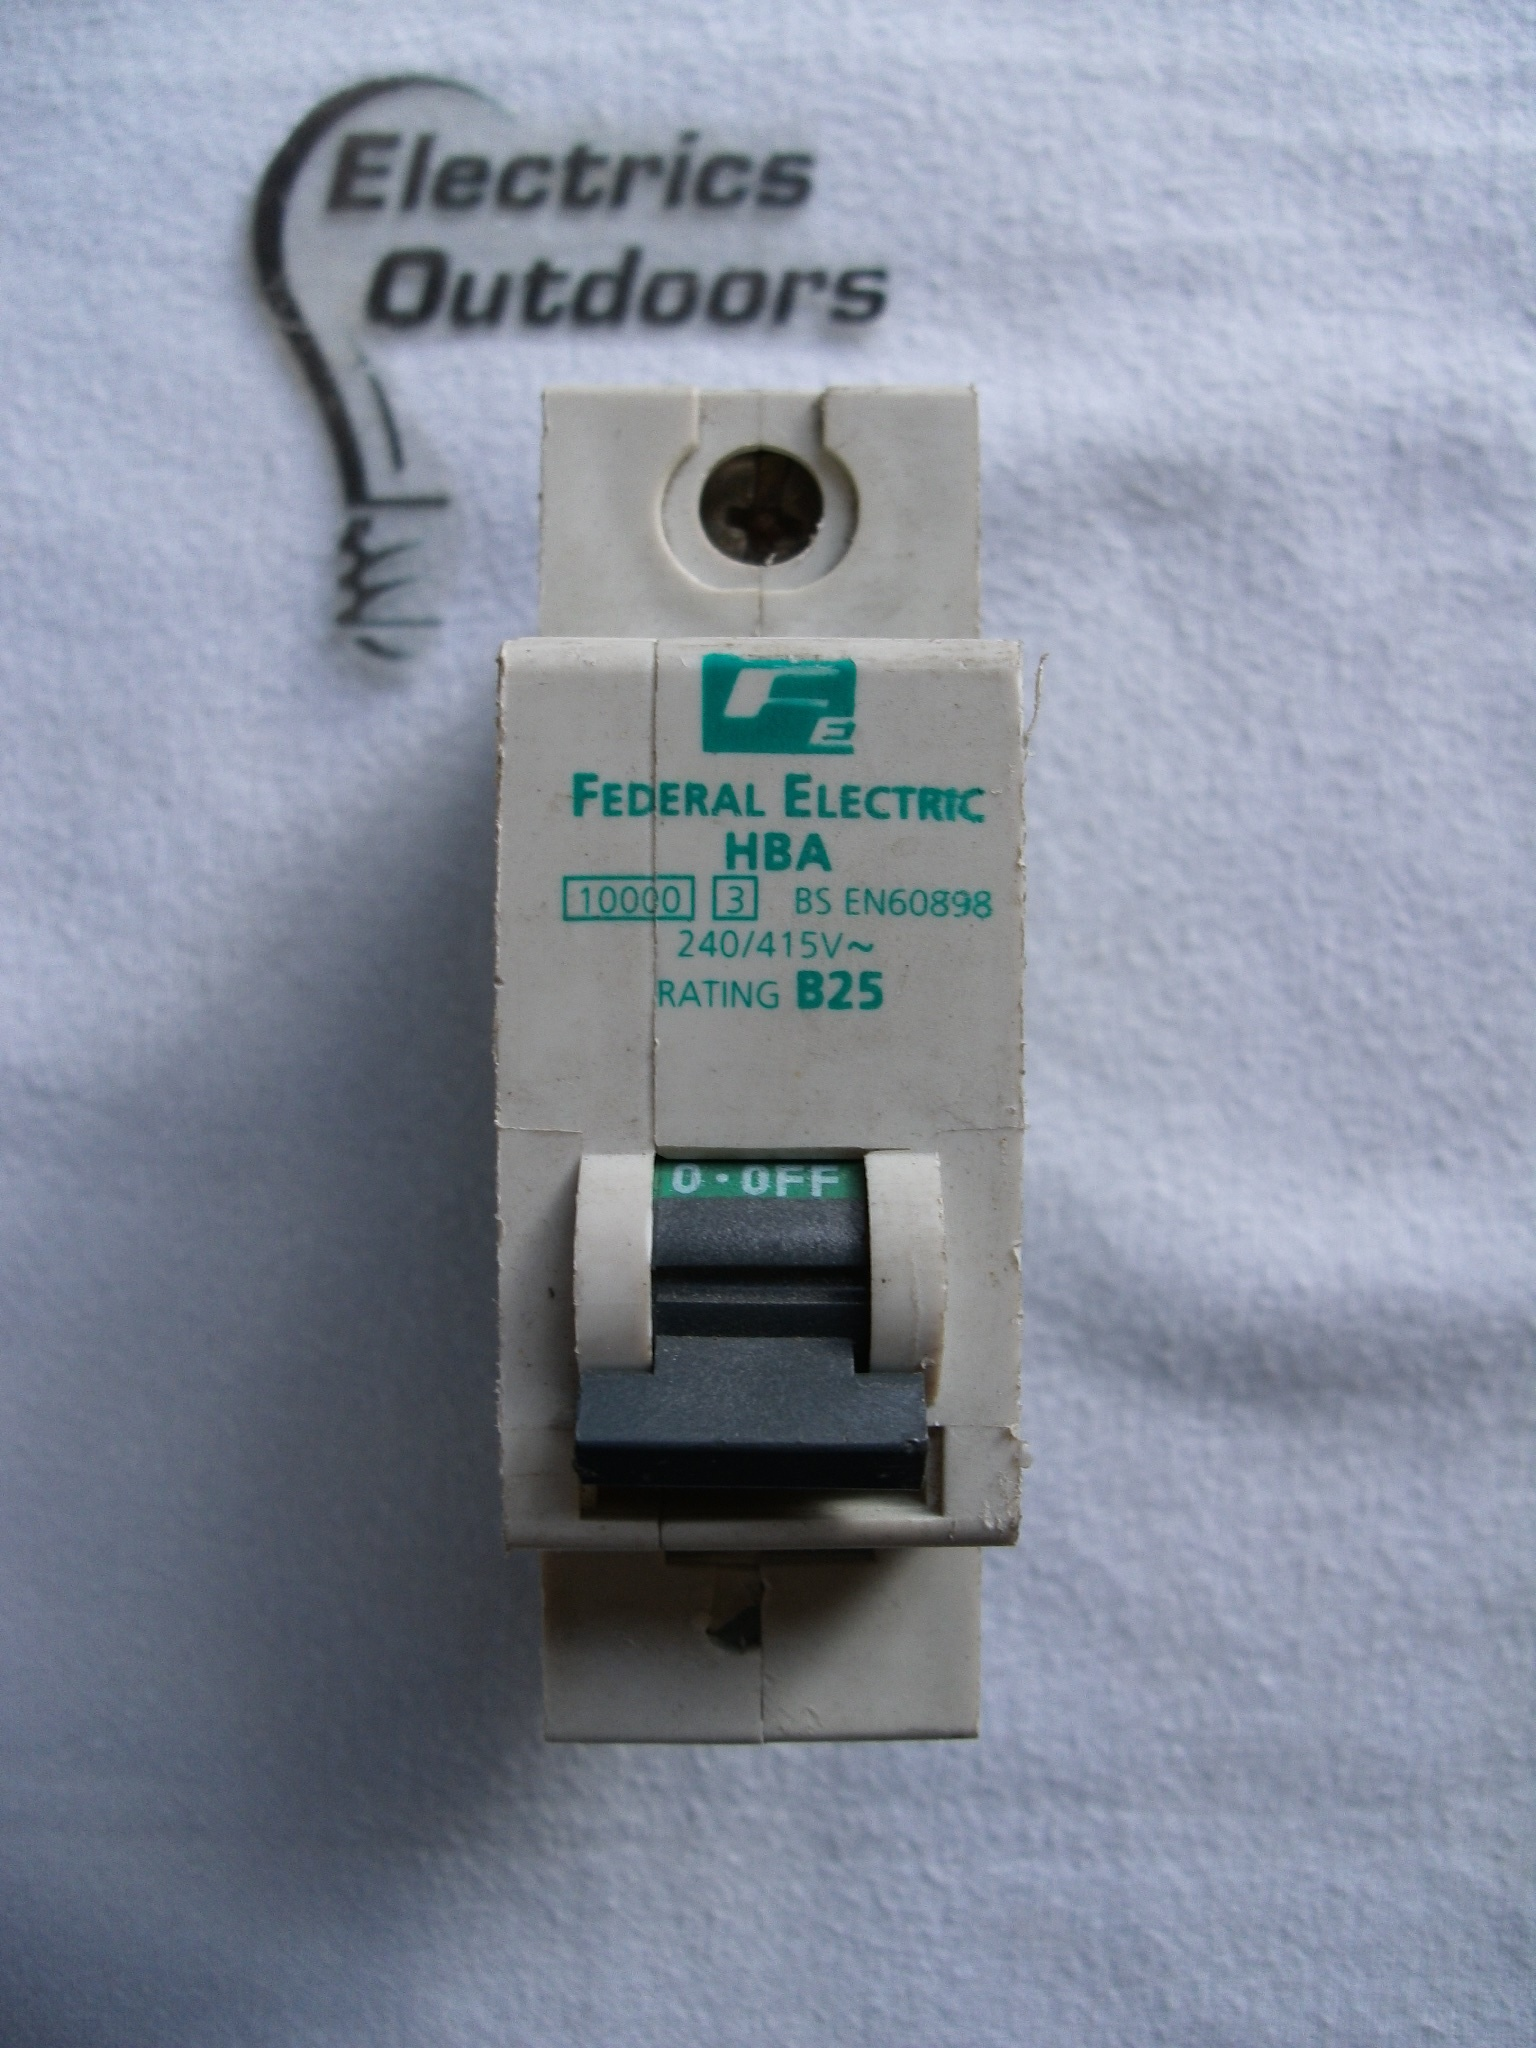 FEDERAL ELECTRIC 25 AMP TYPE B 10 kA MCB CIRCUIT BREAKER HBA STABLOK BS EN 60898